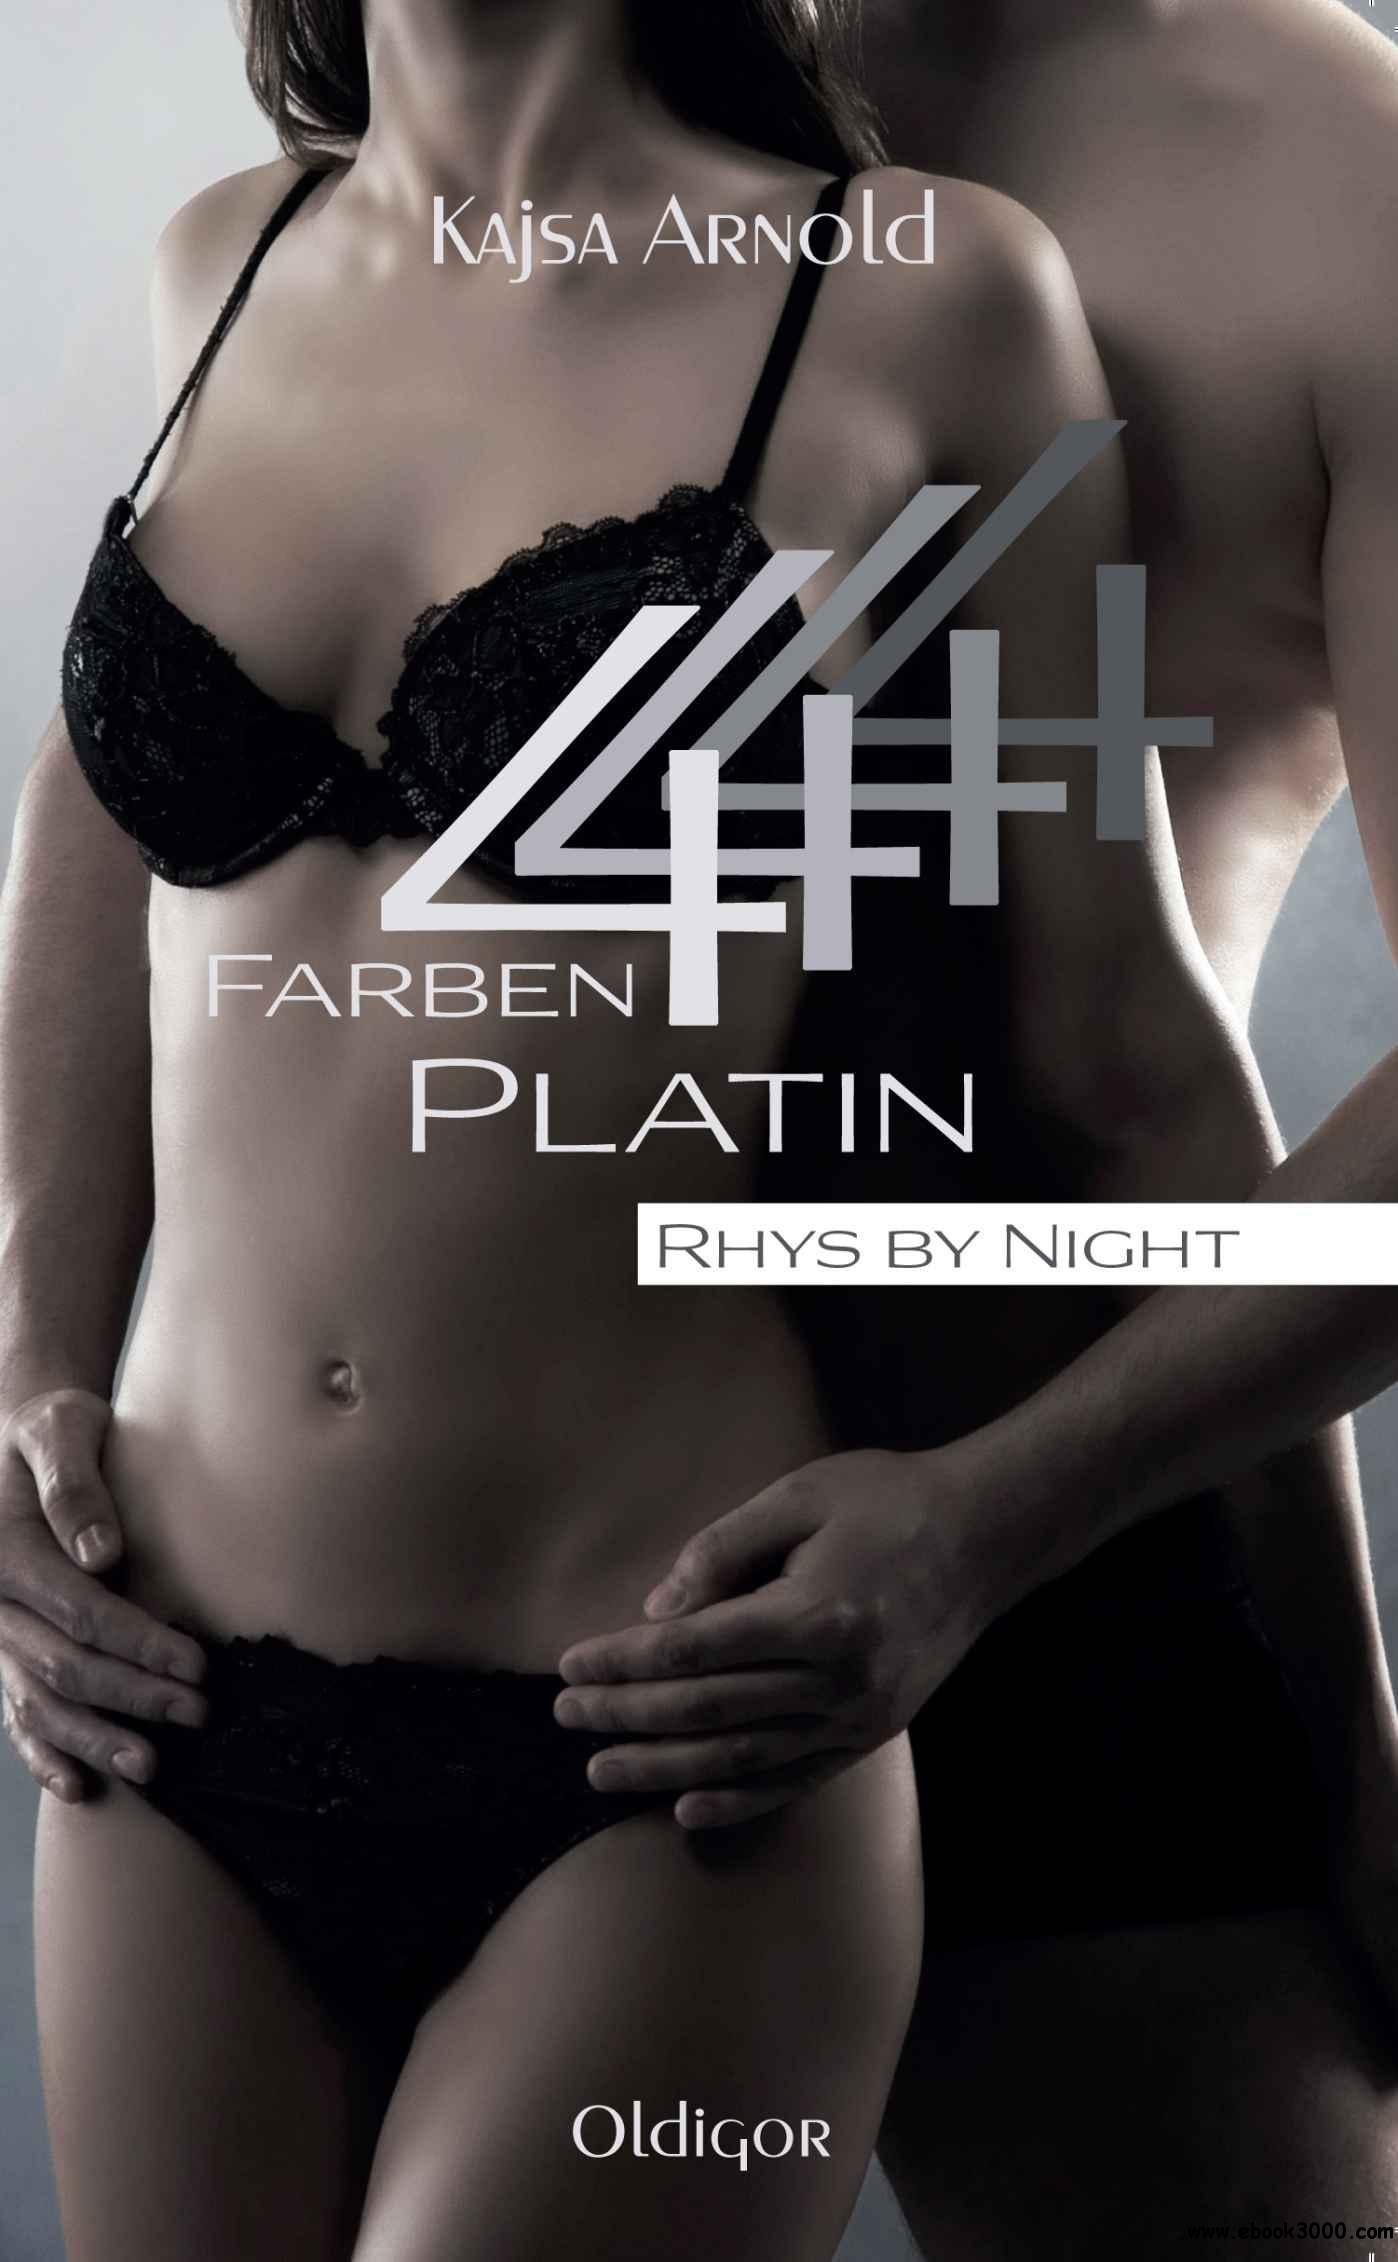 Arnold, Kajsa - Rhys By Night 02 - 4 Farben platin free download